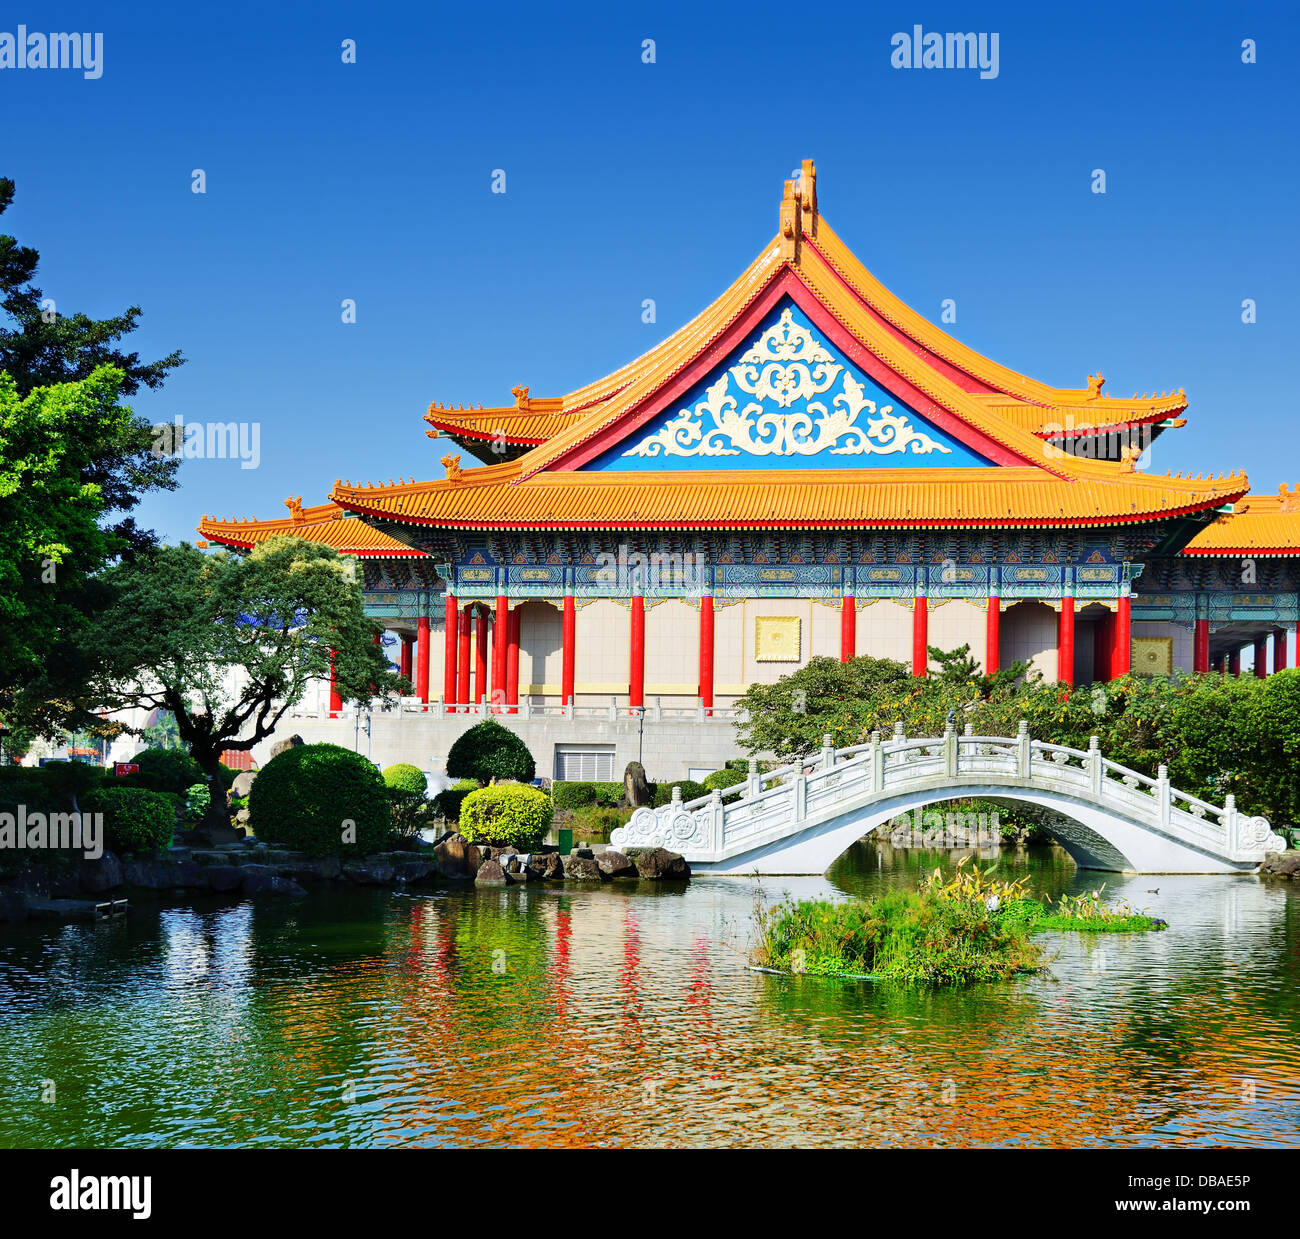 National Theater of Taiwan in Freedom Square, Taipei, Taiwan. - Stock Image